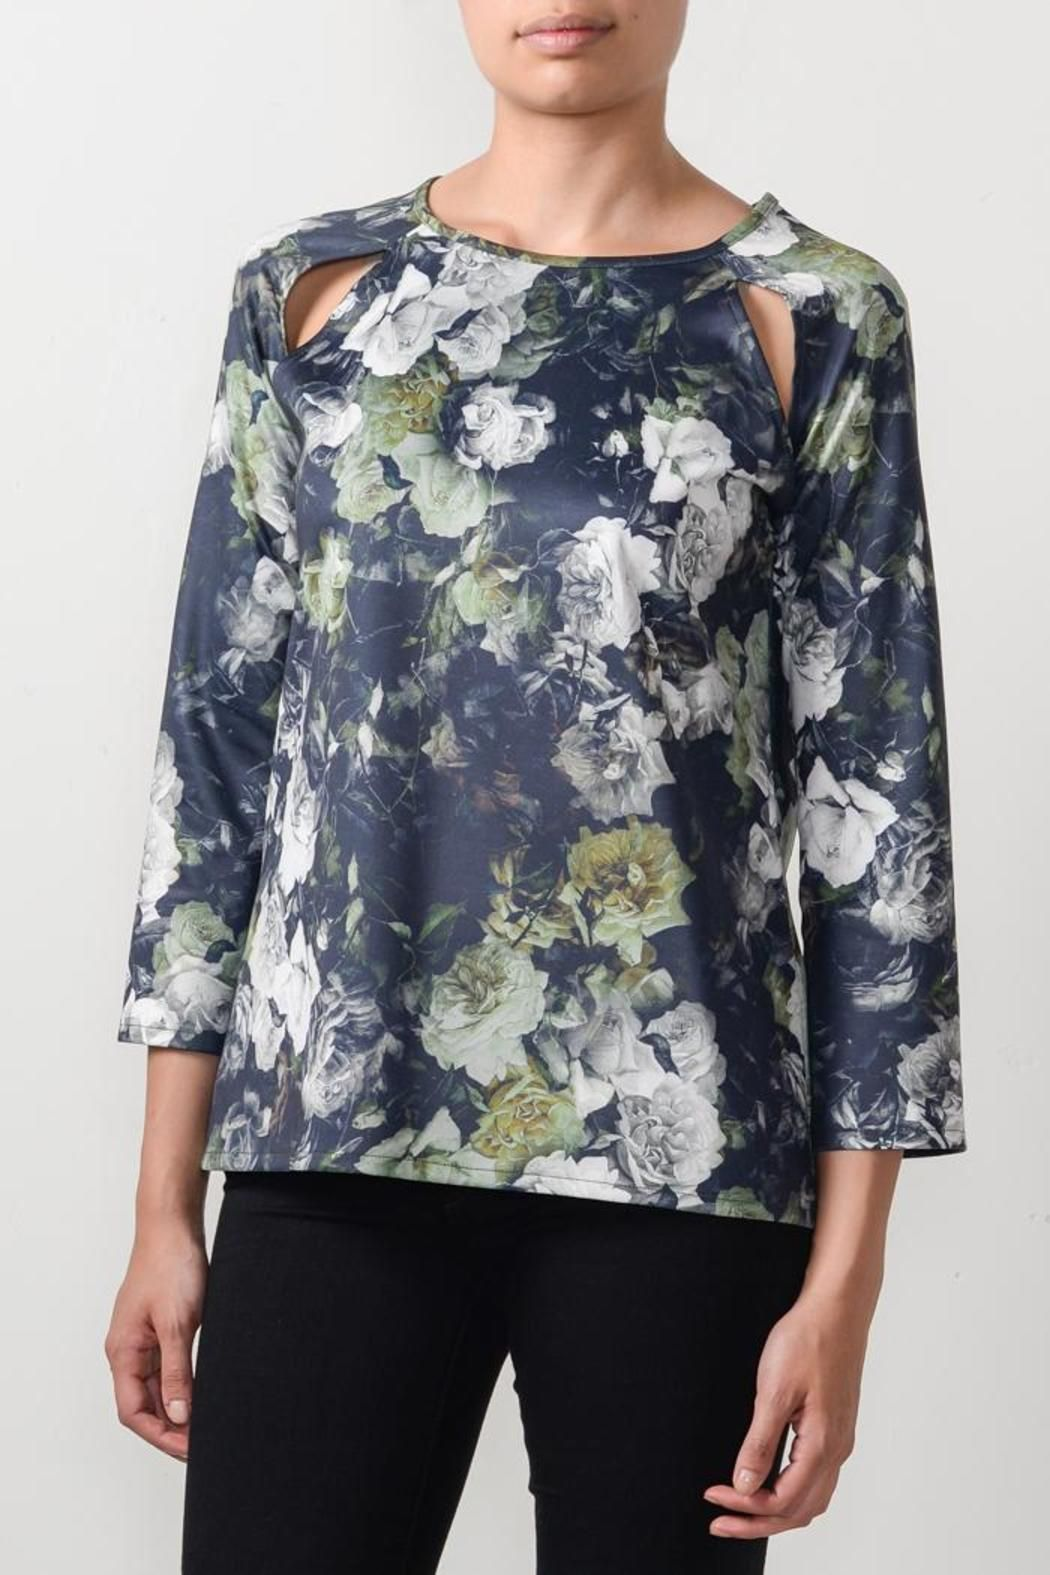 Floral printed top with shoulder cut out and long sleeves - fitted and perfect with denim! Dry Clean Only.Sizes are Australian.    US Size 1 = AUS 4; US 2 = AUS 6; US 4 = AUS 8; US 6 = AUS 10; US 8 = AUS 12   Krule Floral Top  by Lucy McIntosh . Clothing - Tops - Blouses & Shirts Toronto, Canada